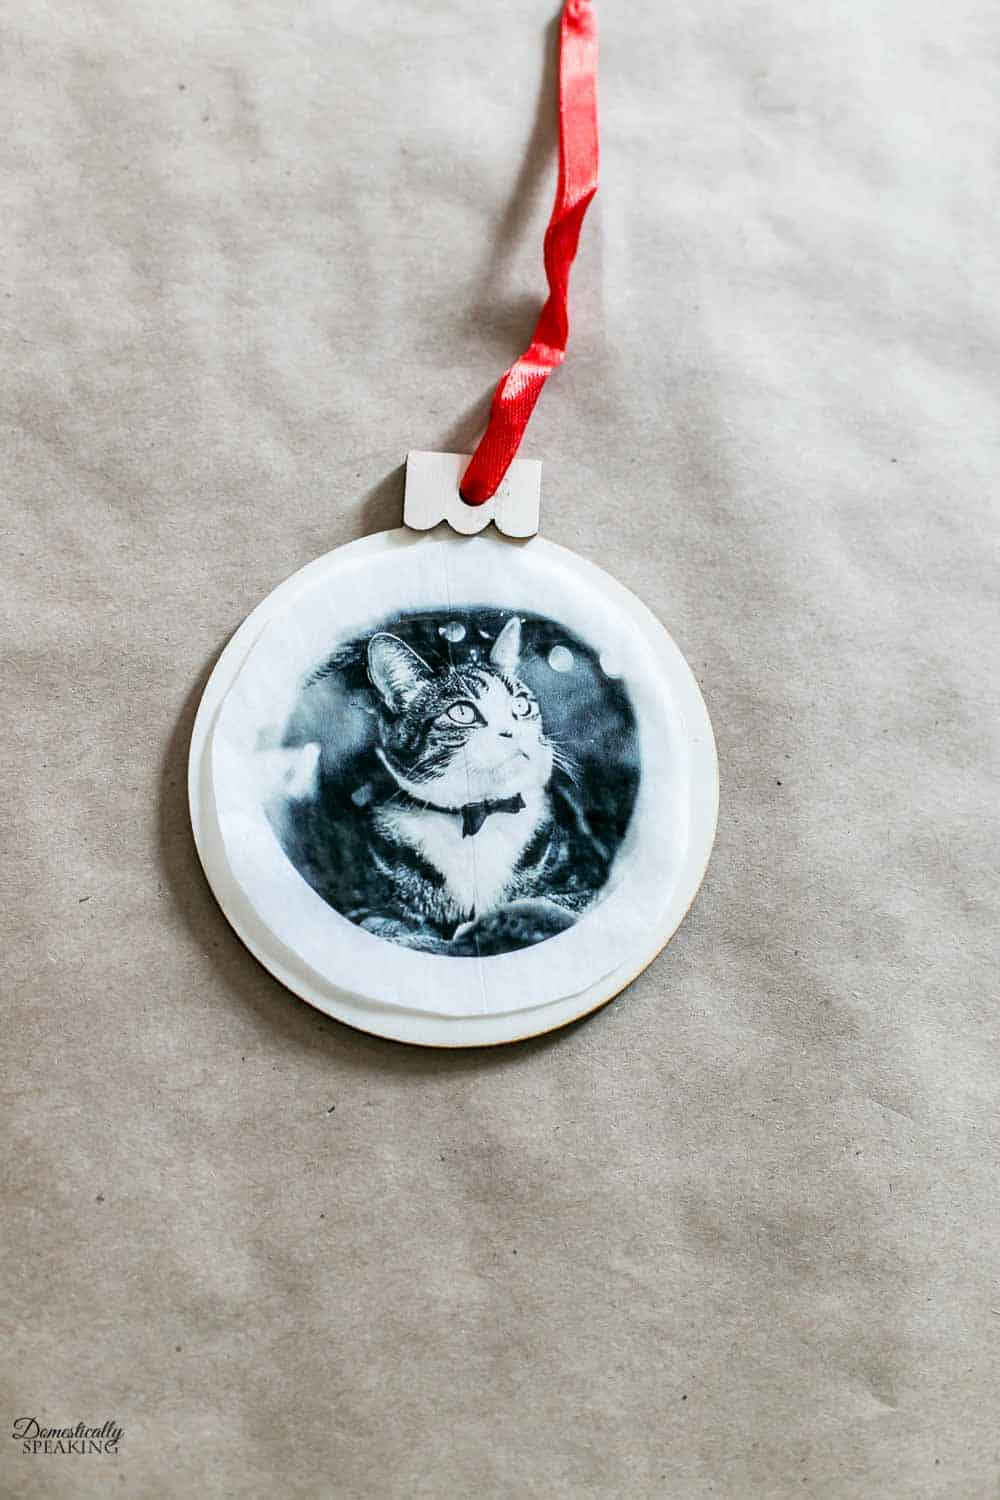 Photo tissue paper on top of ornaments.